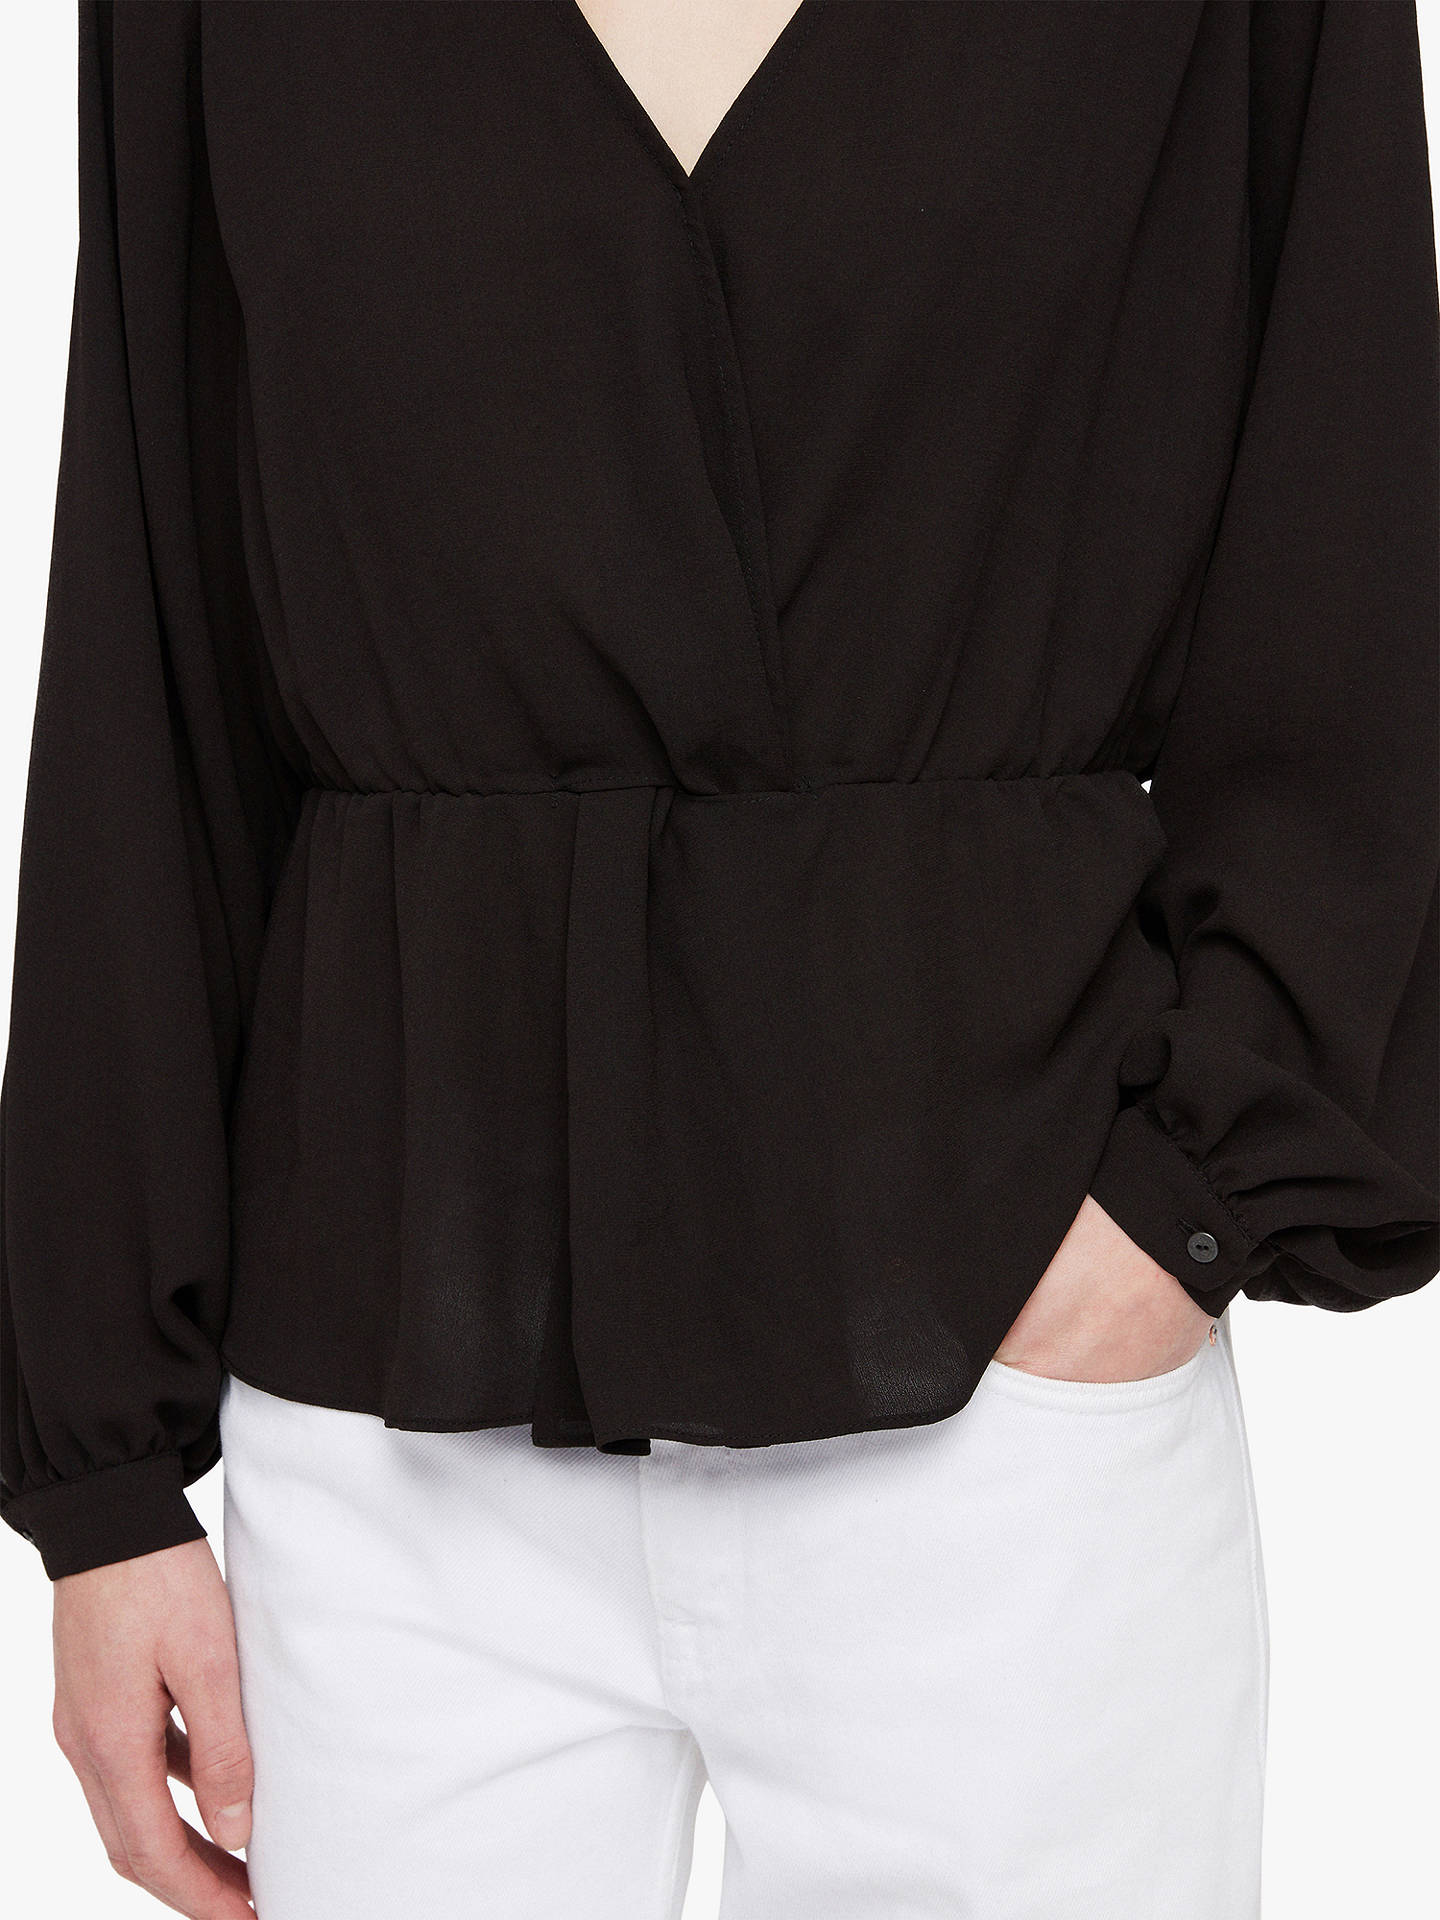 BuyAllSaints Lasia Peplum V-Neck Top, Black, XS Online at johnlewis.com